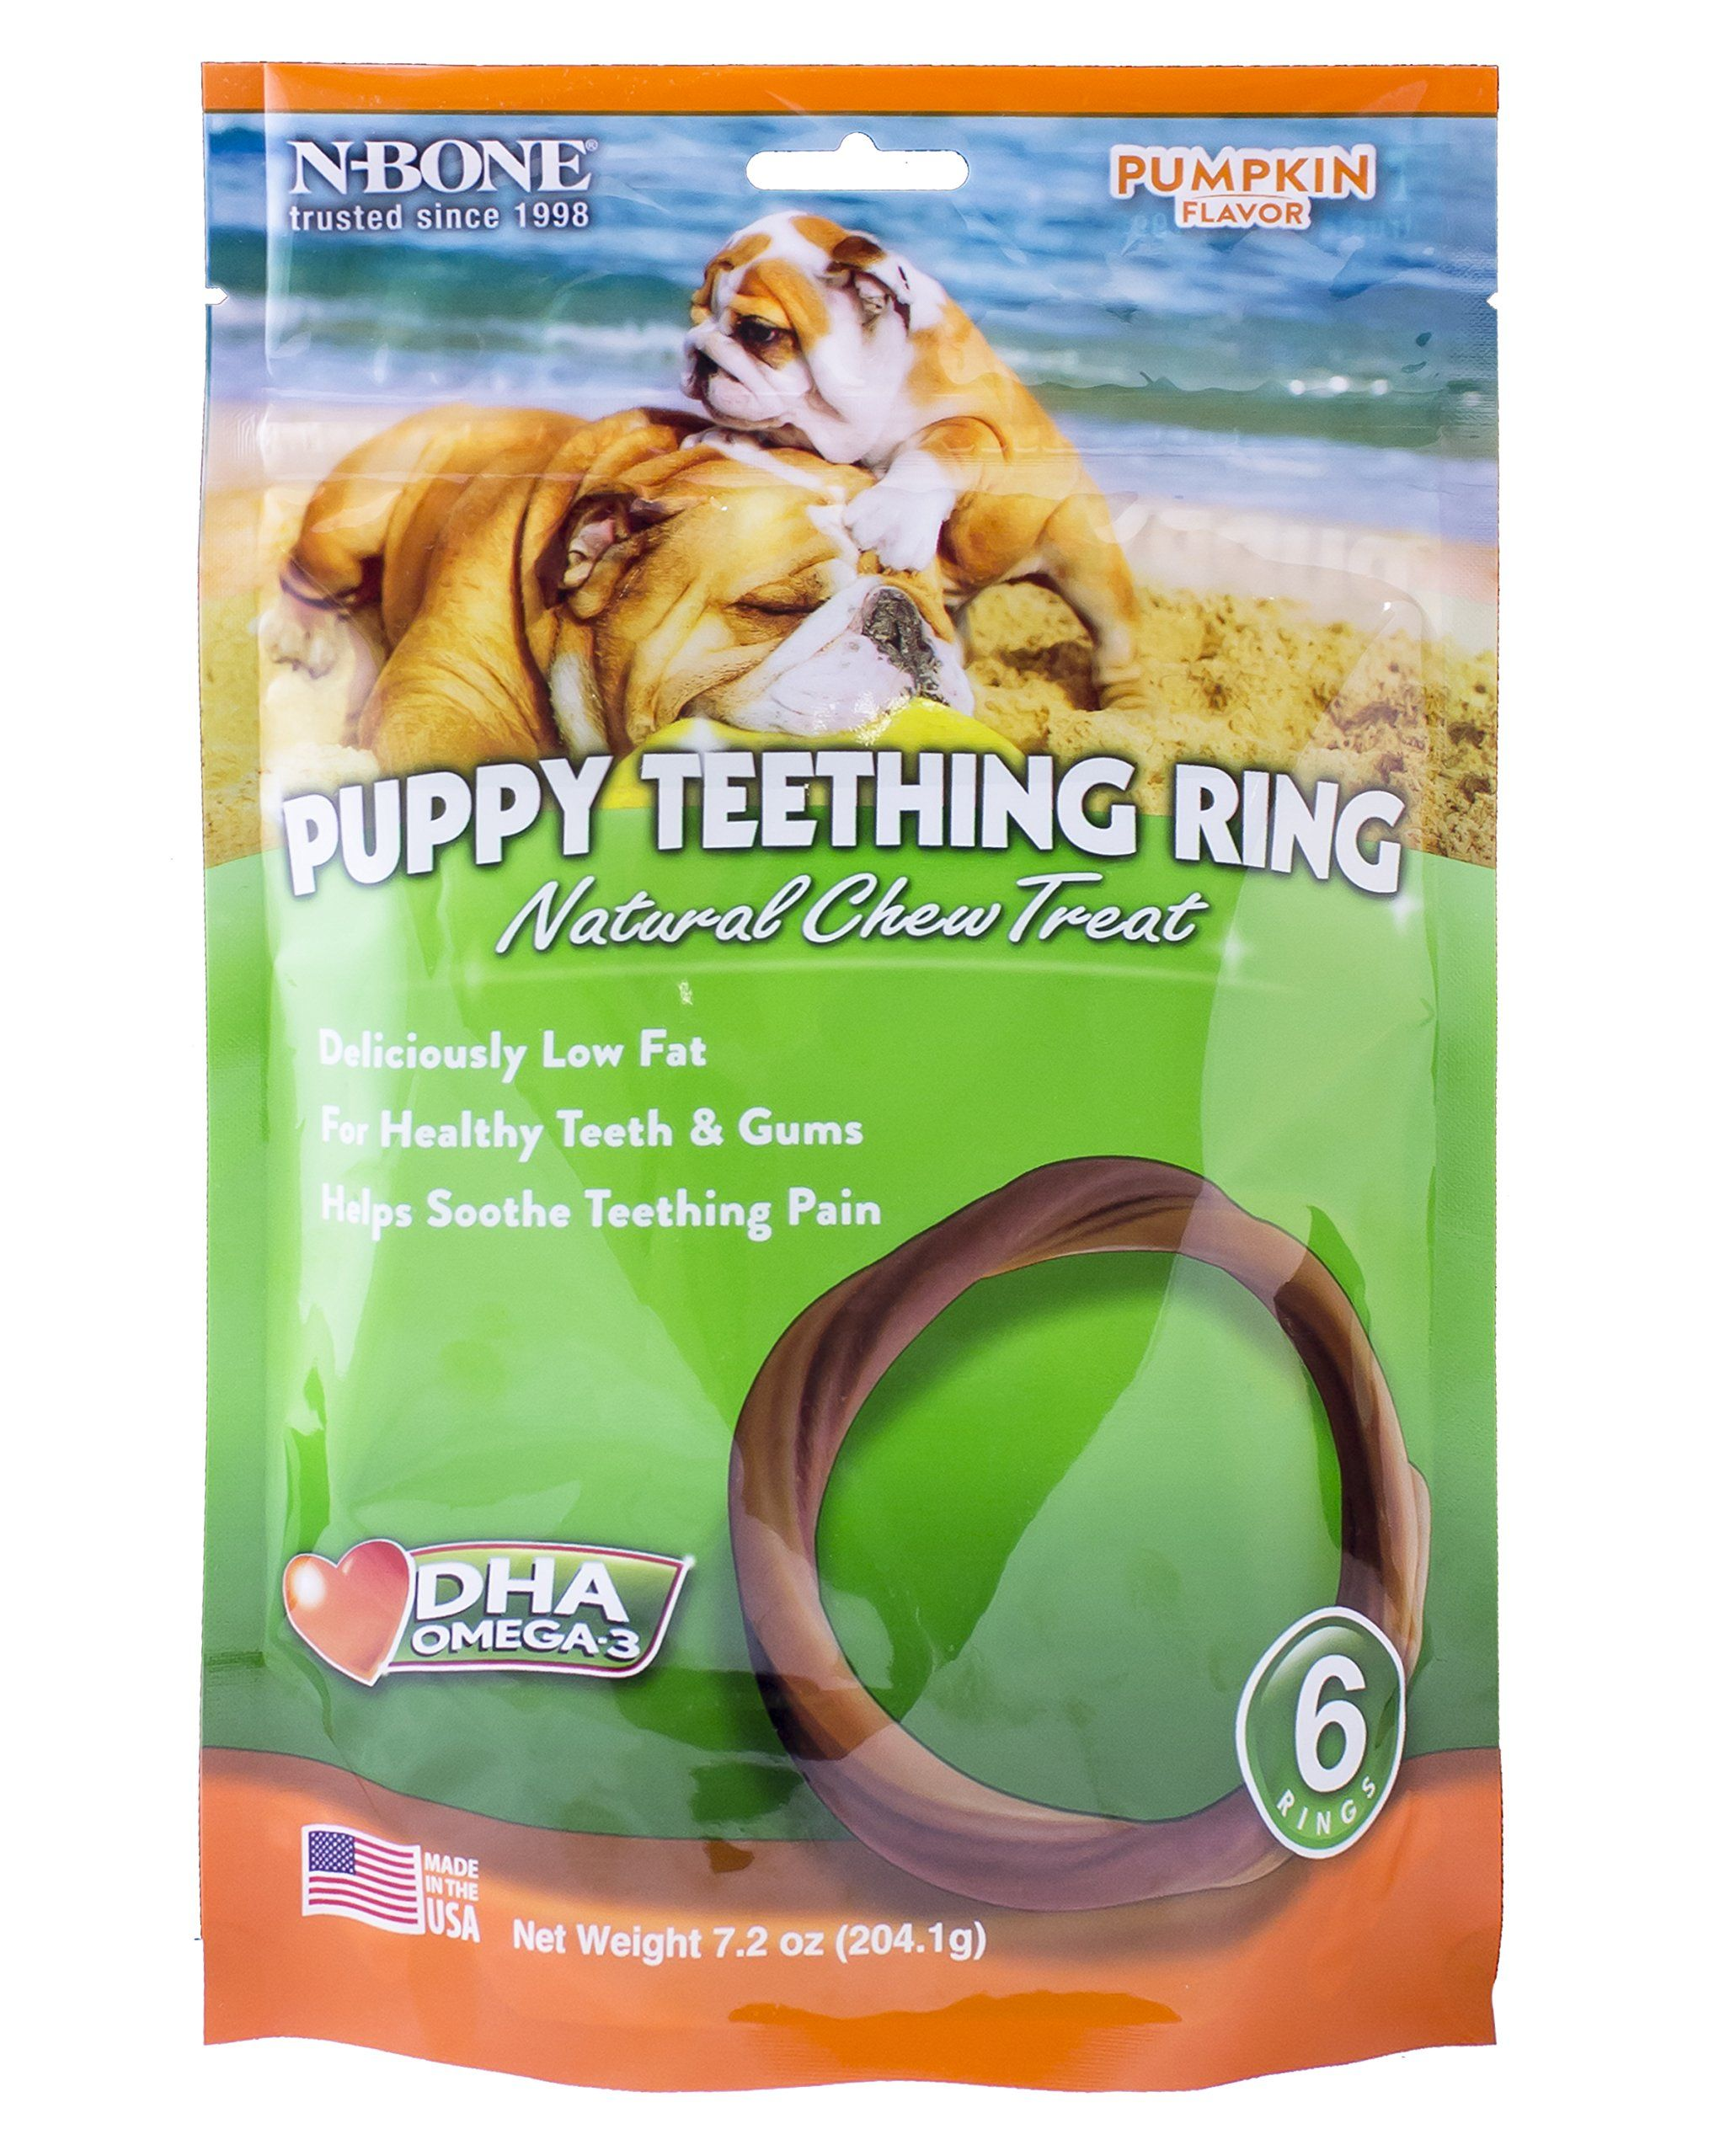 The Best Dog Bones For Your Puppy S Teeth Puppy Teething Dog Teeth Pumpkin Flavor